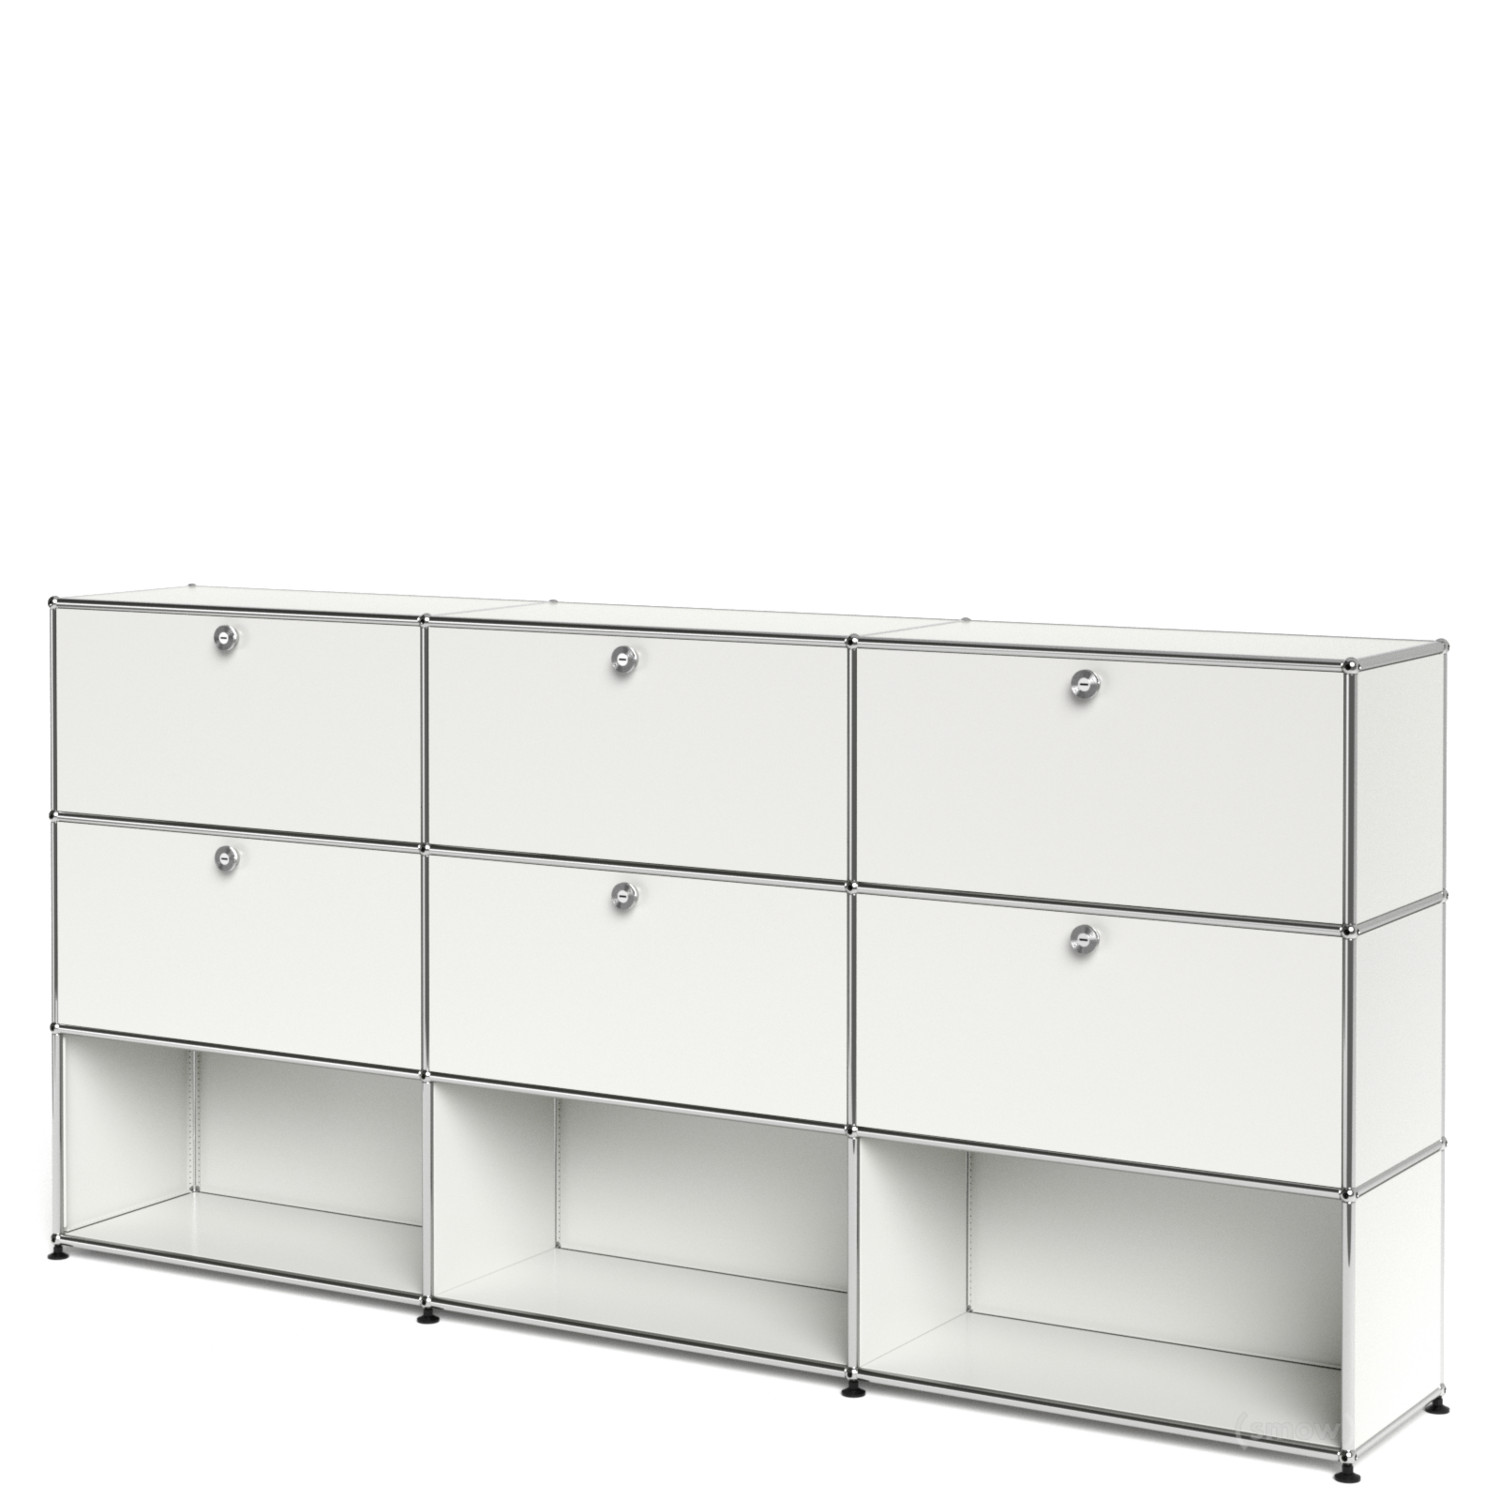 usm haller highboard xl individualisierbar reinwei ral. Black Bedroom Furniture Sets. Home Design Ideas